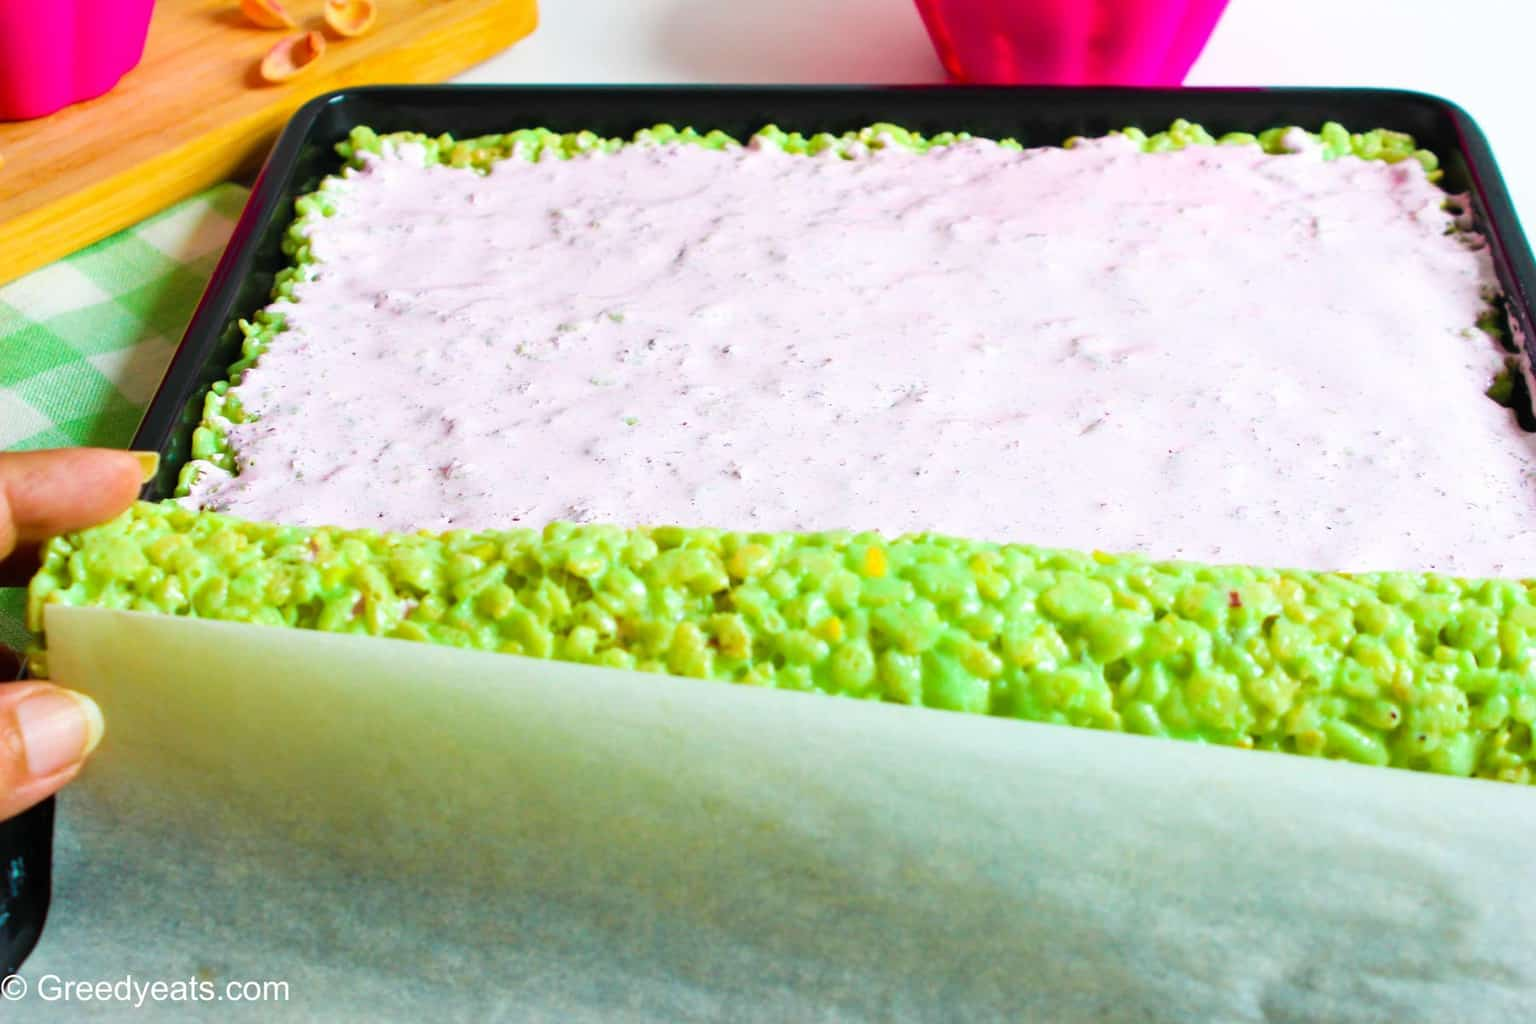 Rolling rice krispie treats with the help of parchment paper.